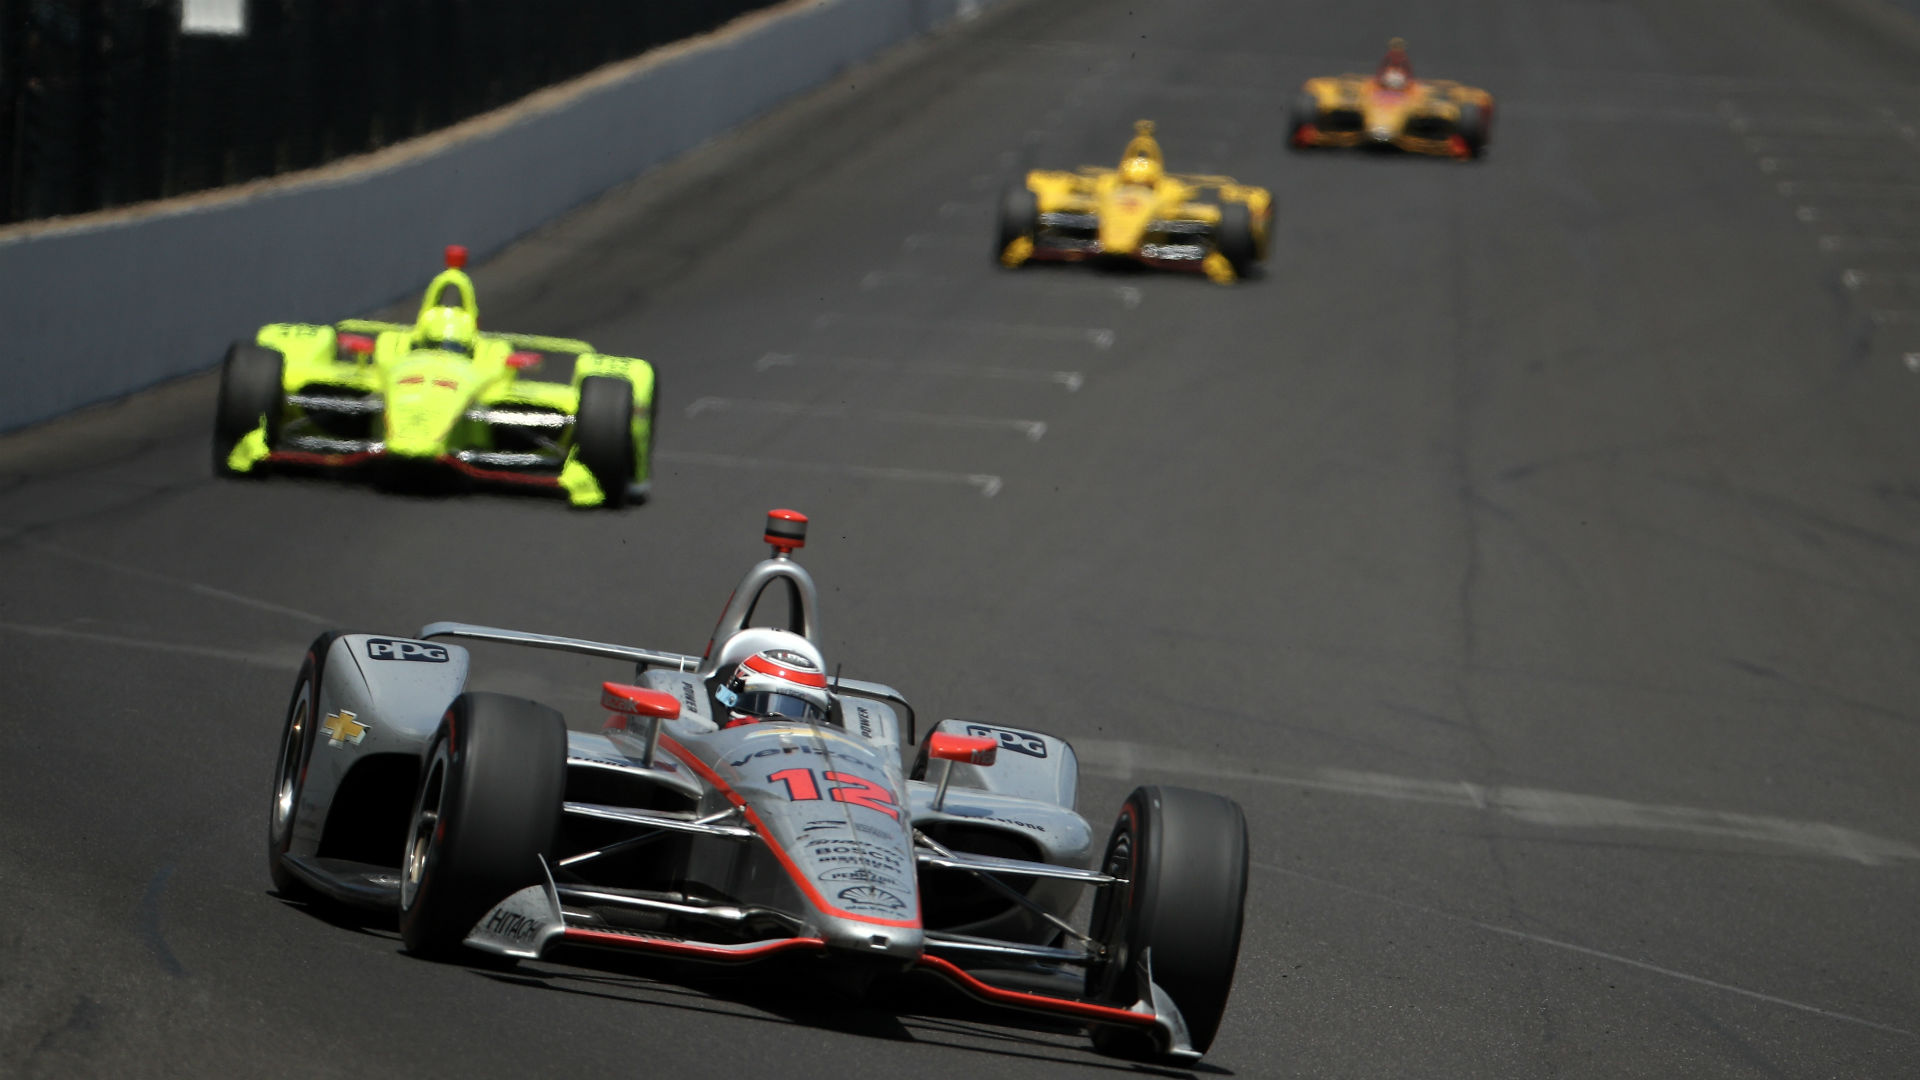 Indy 500 practice schedule, speeds, time results: Who's fastest for 2019 race?